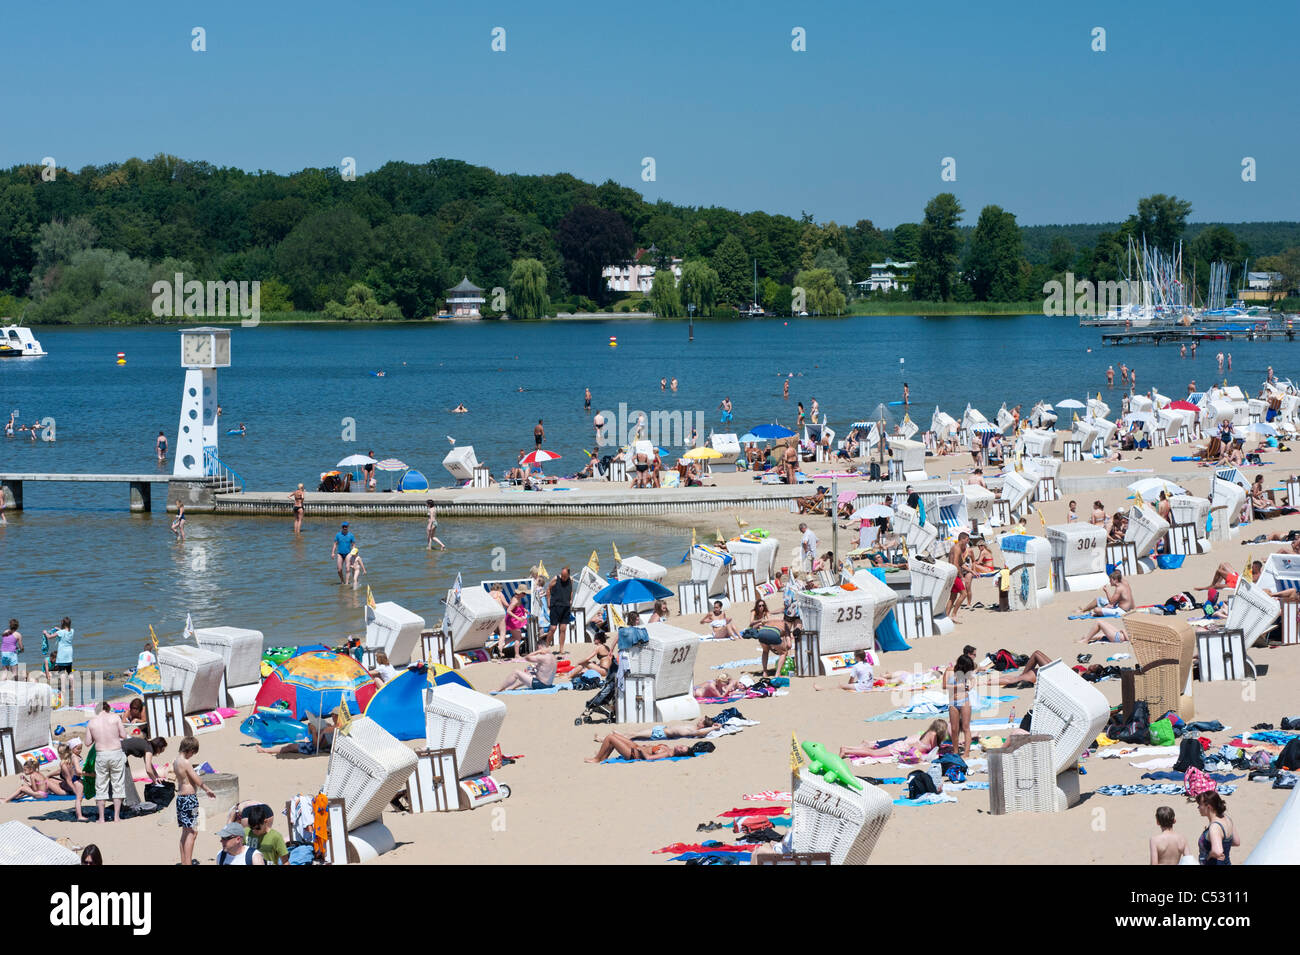 Busy beach at Strandbad in Wannsee in Berlin Germany - Stock Image